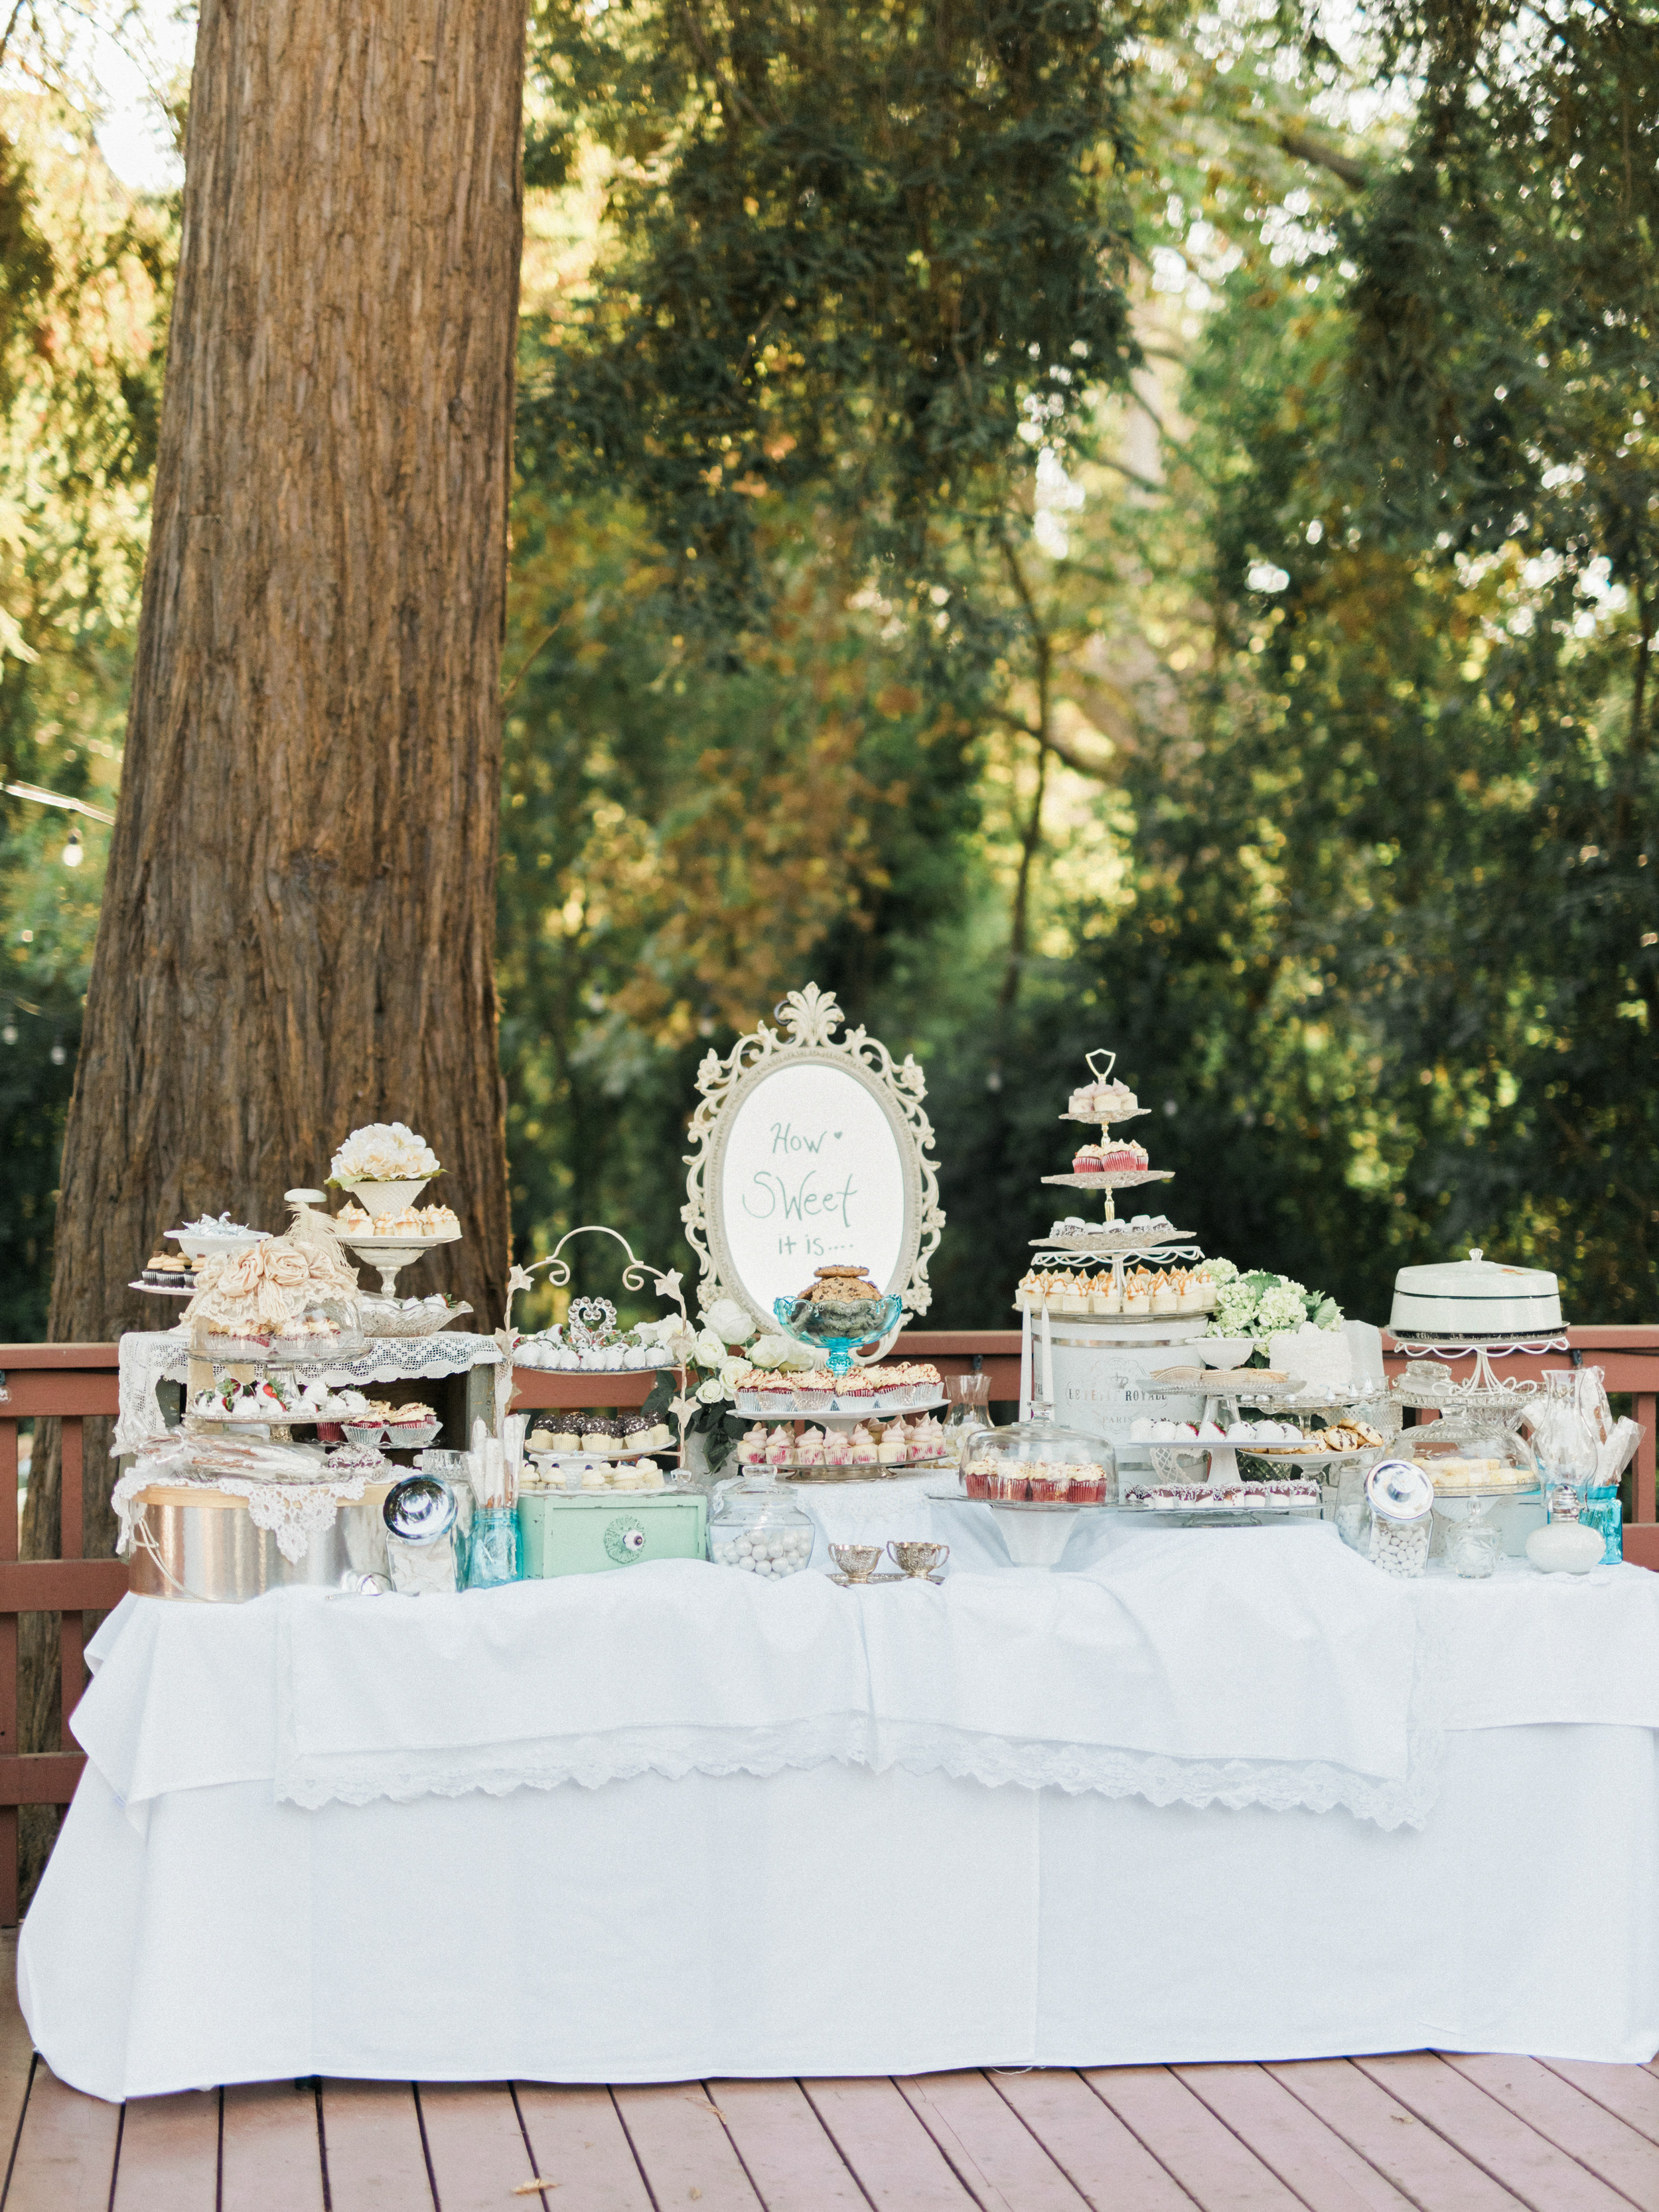 Tiered Dessert Display